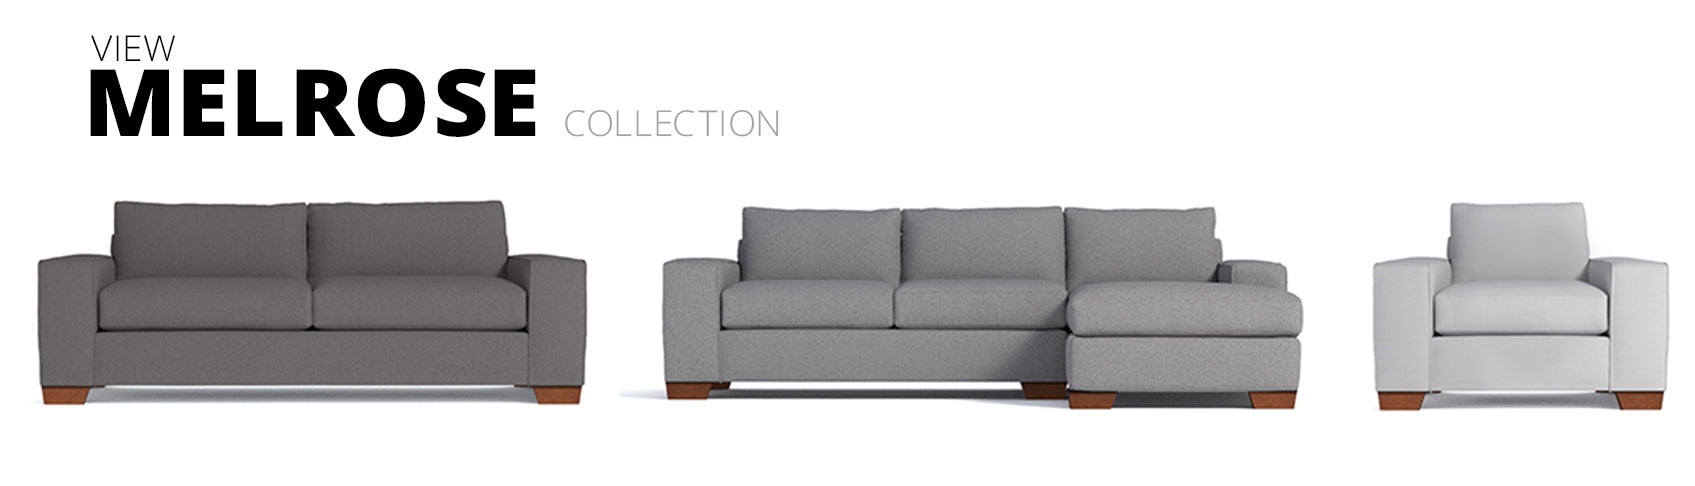 View Melrose Collection